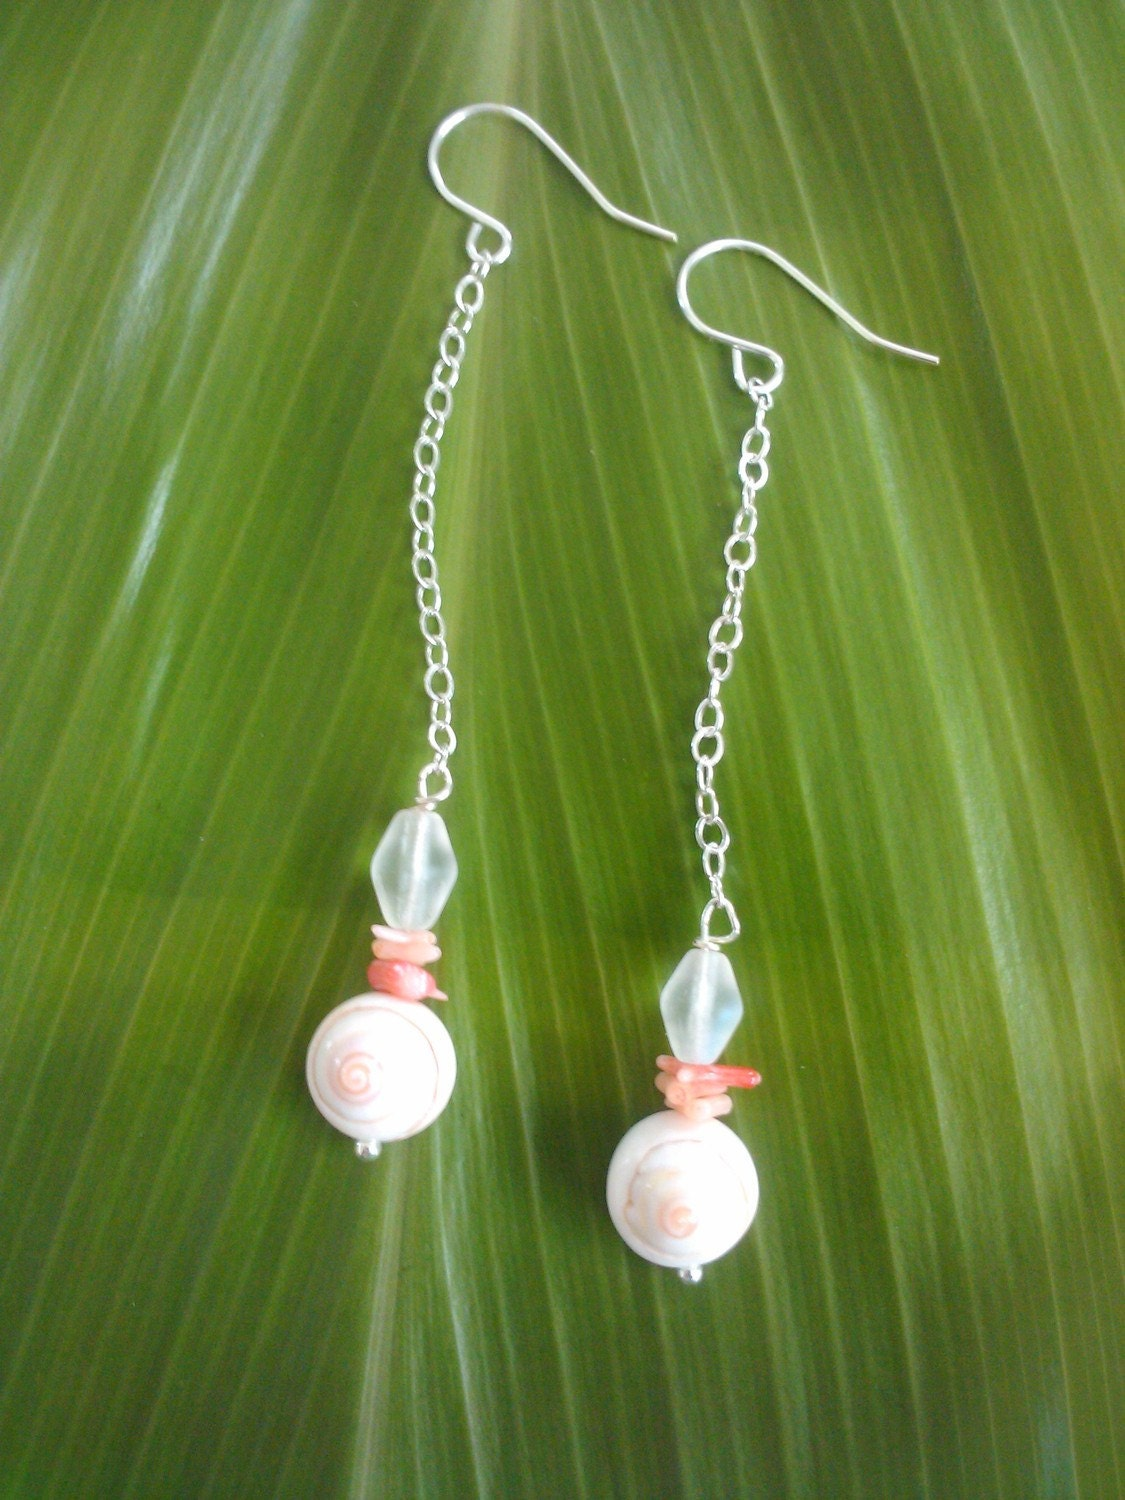 Seven Seas Dangle - all sterling silver w/ seashells, coral & glass beads